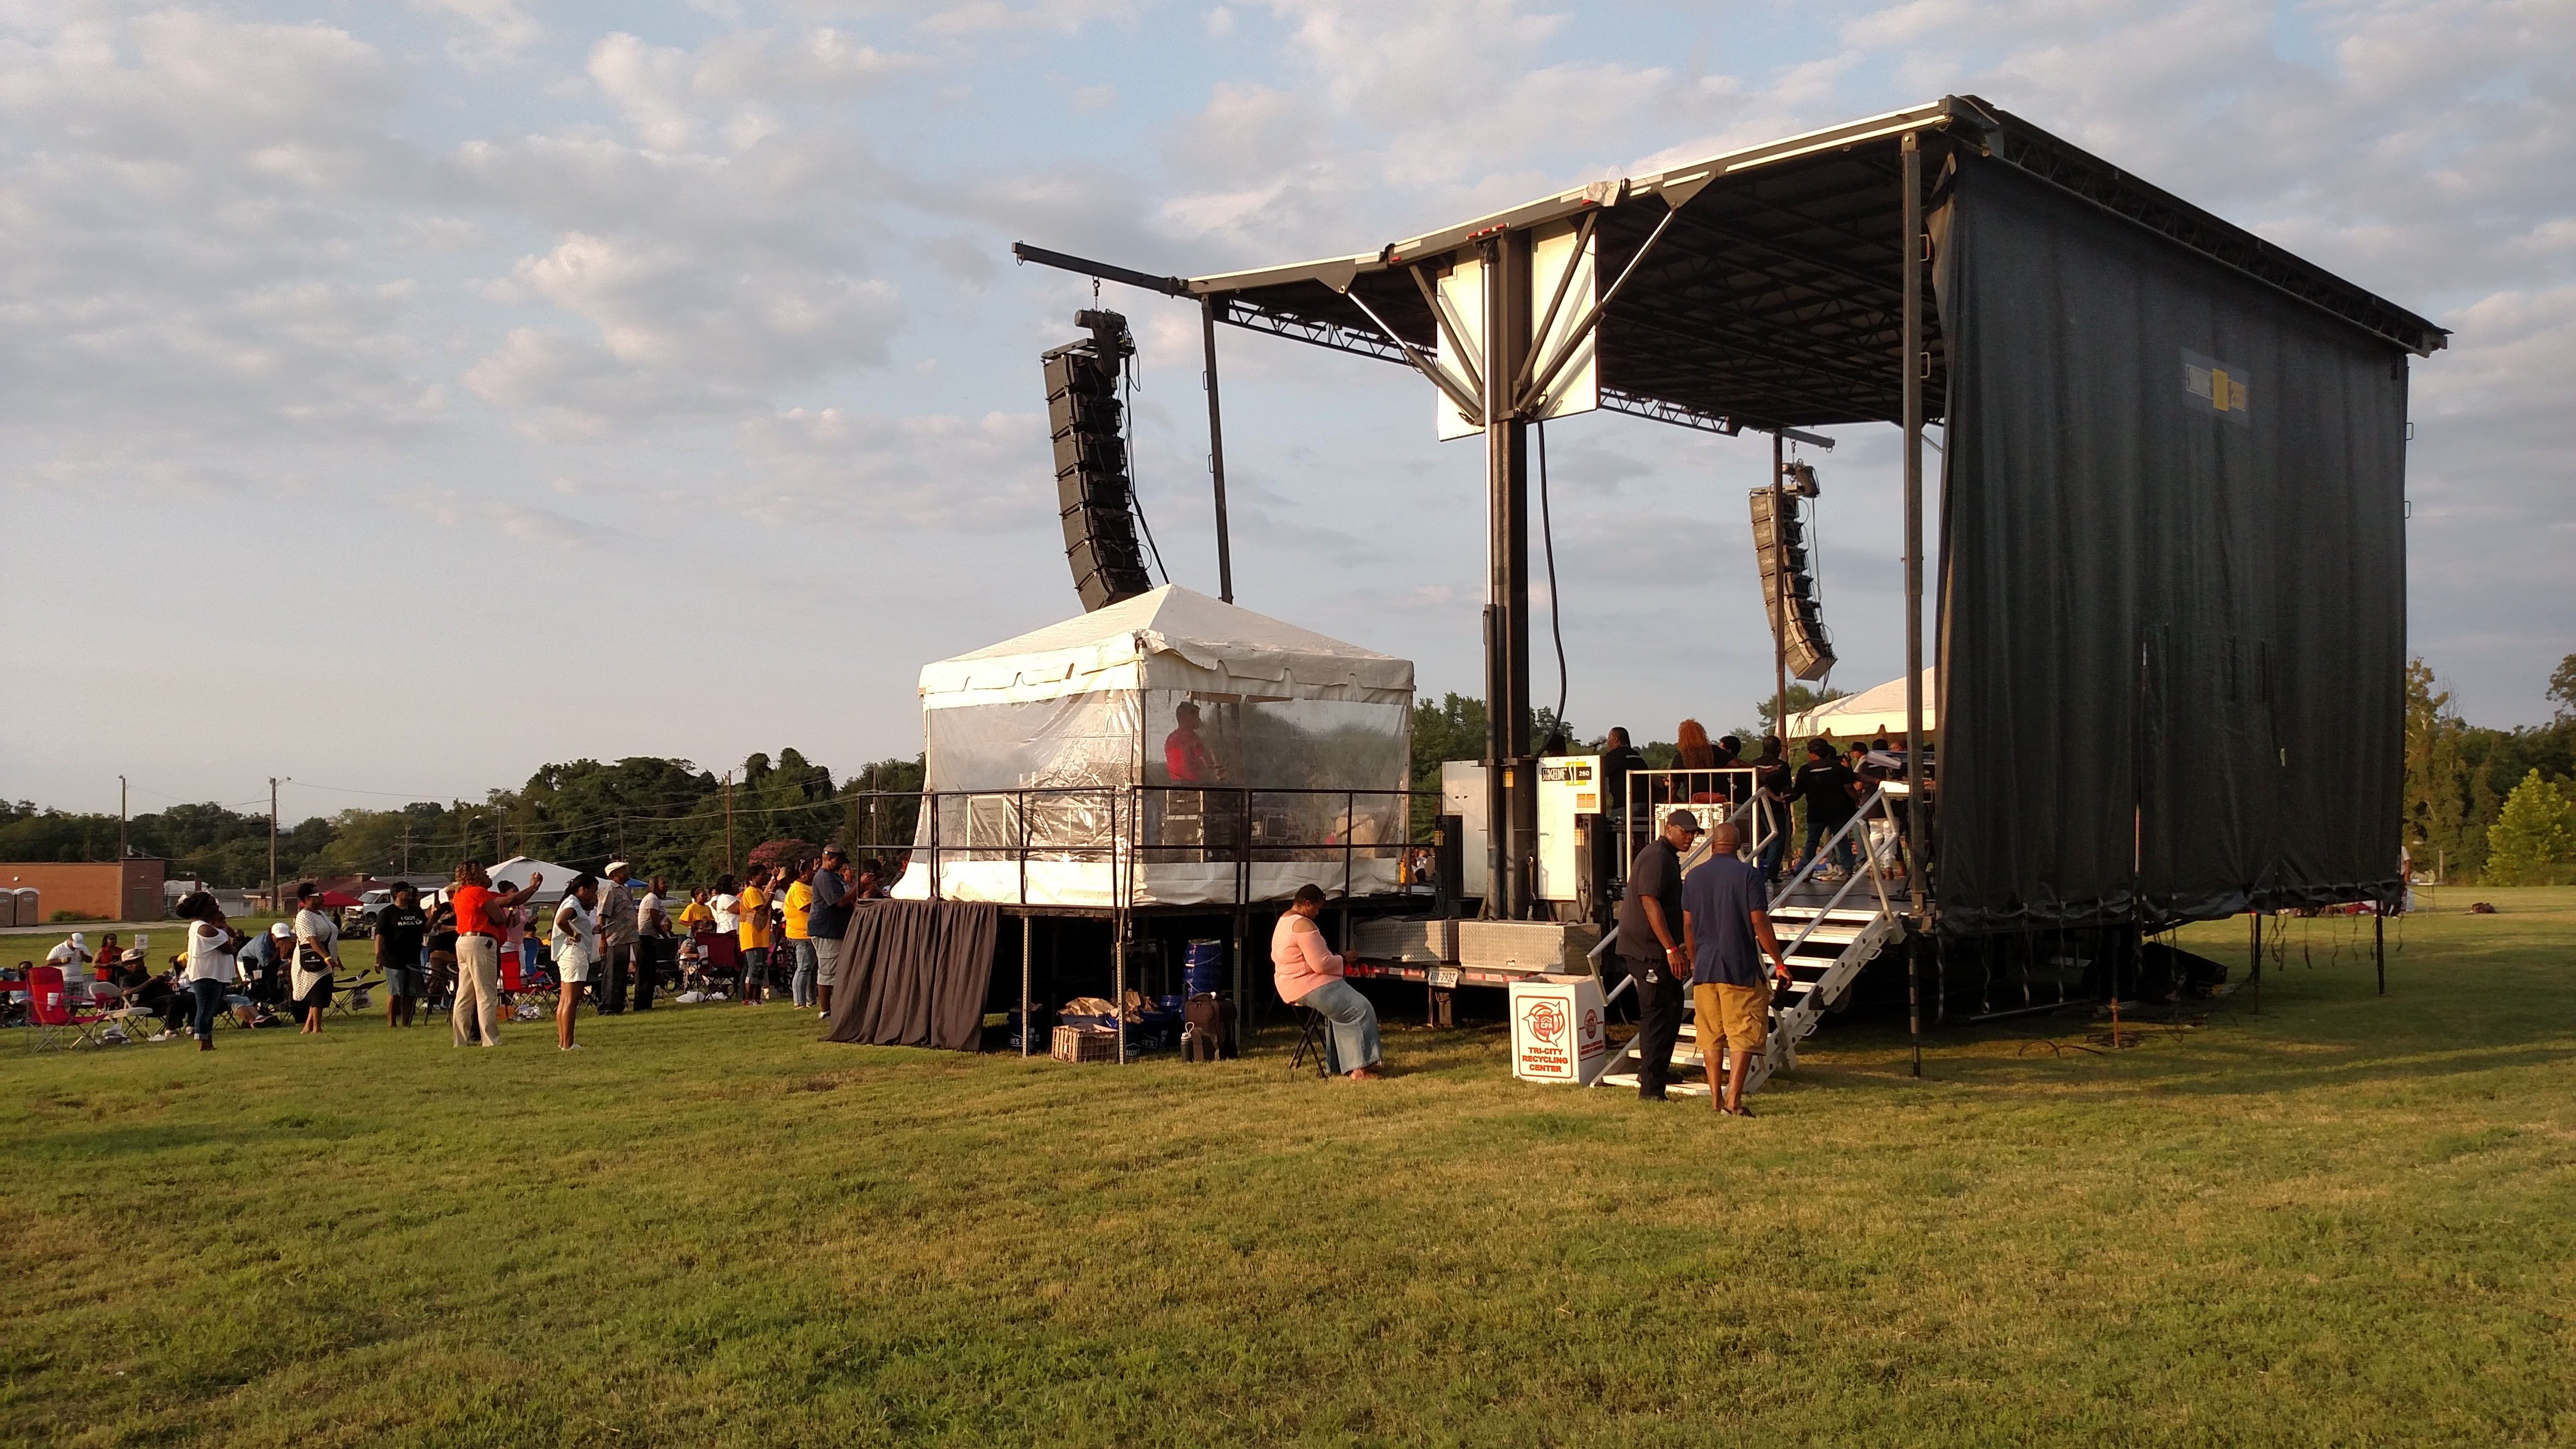 Stageline SL260 is setup for event in Petersburg VA, showing view from the rear of the stage